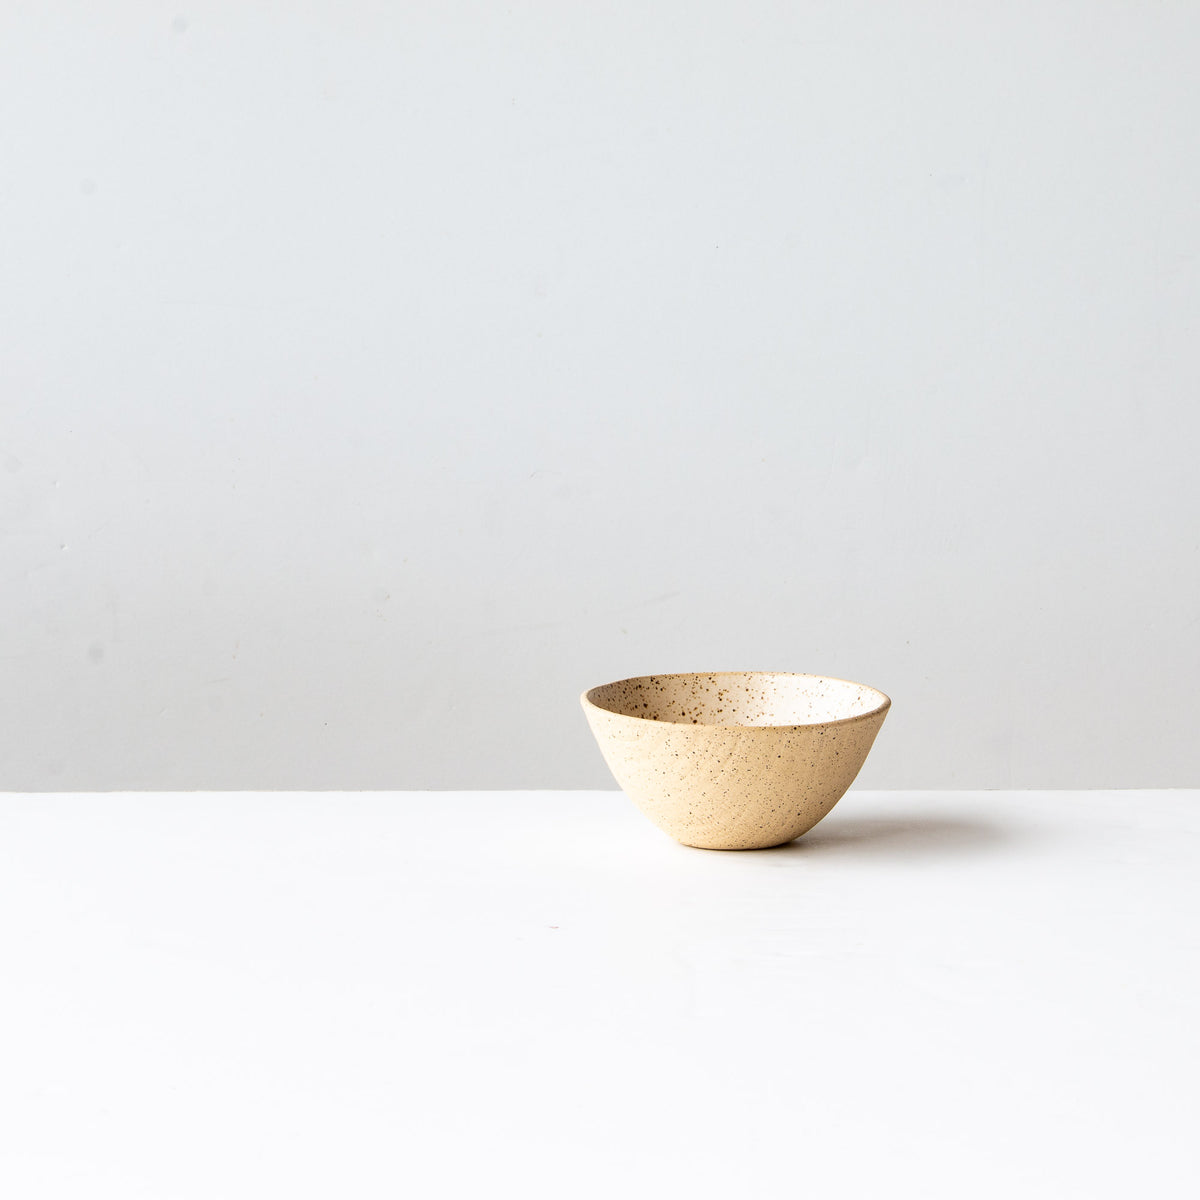 Side View - Off-White Handmade Freckled Ice Cream Bowl in Sandstone Ceramic - Sold by Chic & Basta